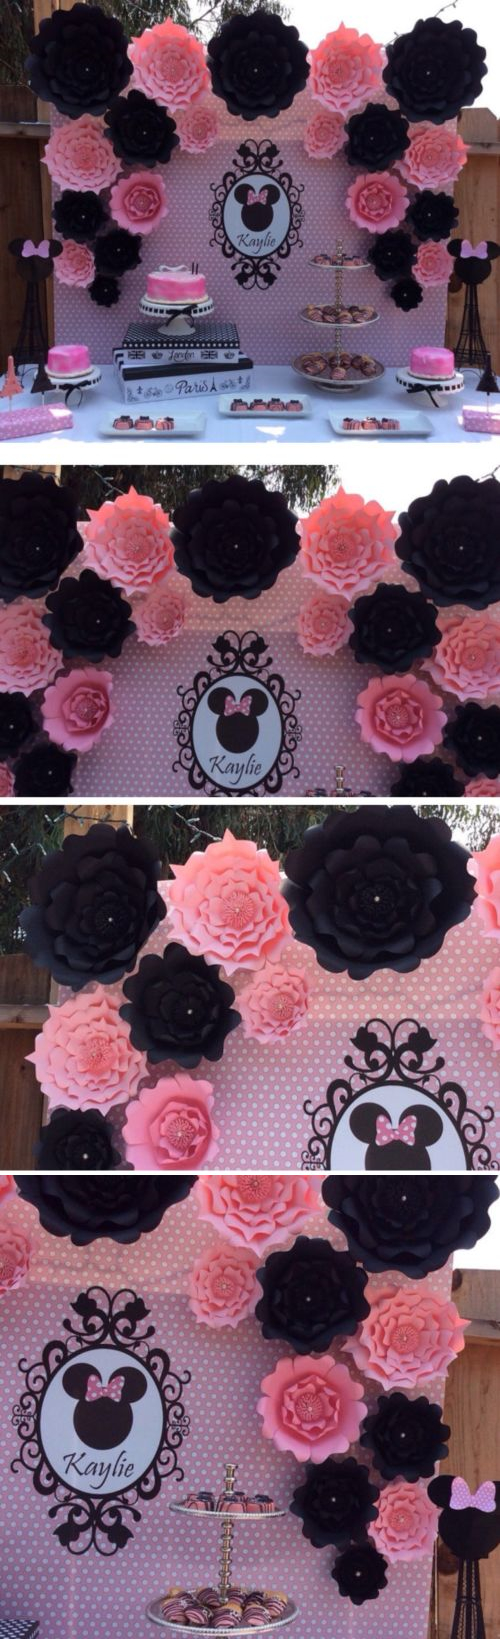 Paper crafts 160666 large paper flowers minnie mouse photo backdrop paper crafts 160666 large paper flowers minnie mouse photo backdrop flower wall paper flowers mightylinksfo